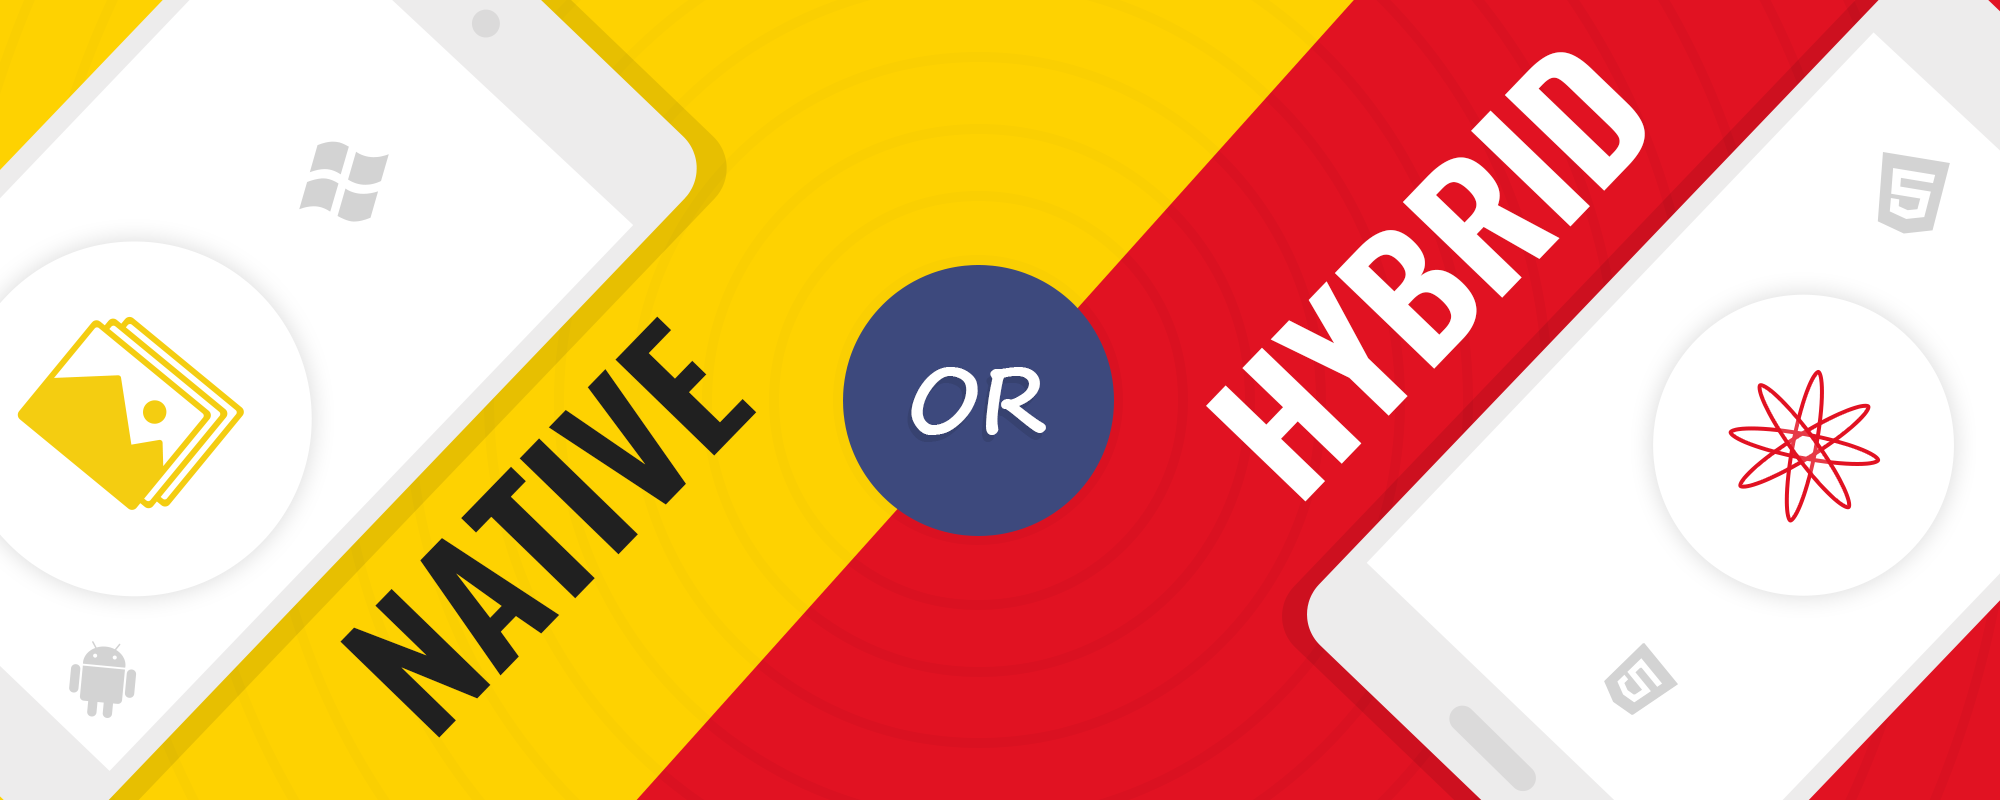 Choosing Between Native And Hybrid Mobile Apps